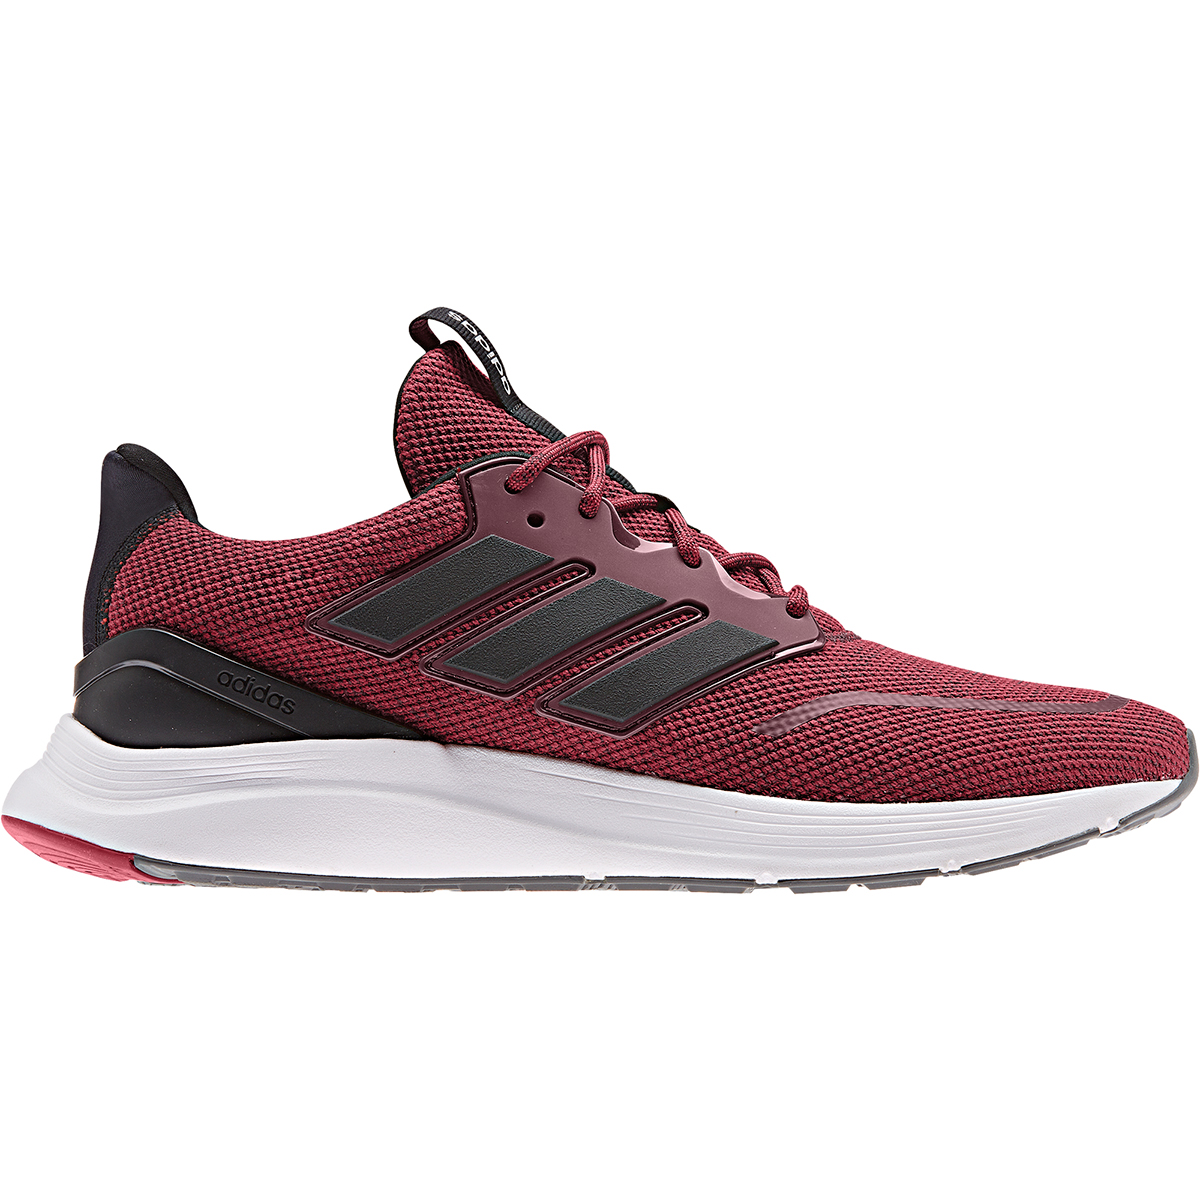 Adidas Men's Energy Falcon Running Shoes - Red, 8